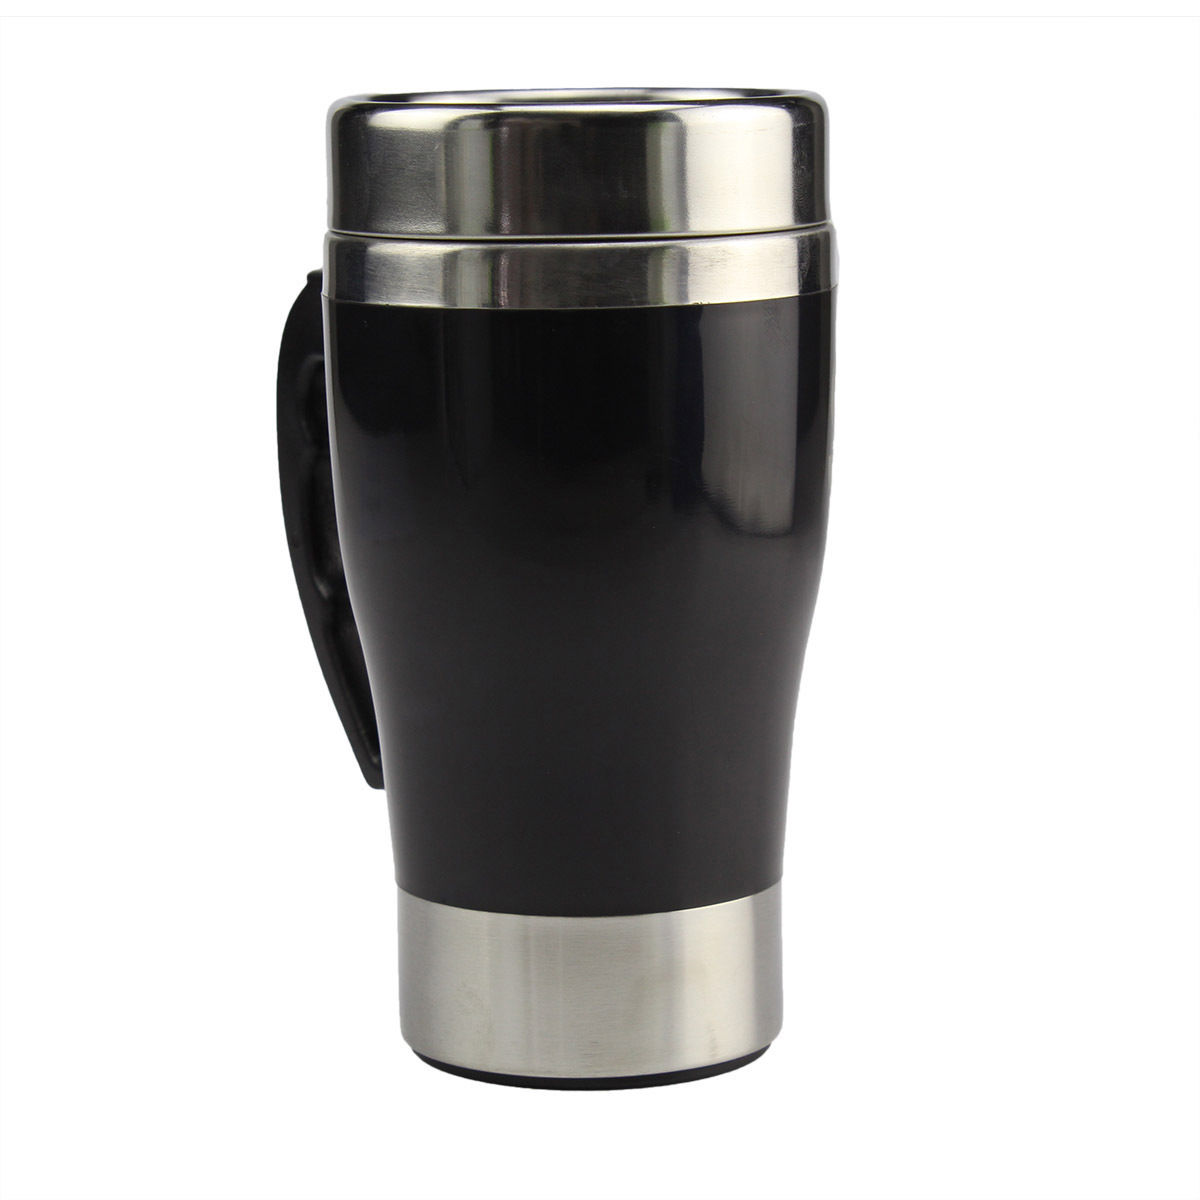 Stainless Steel Lazy Self Stirring Auto Mixing Mug Office Home Tea Coffee Cup